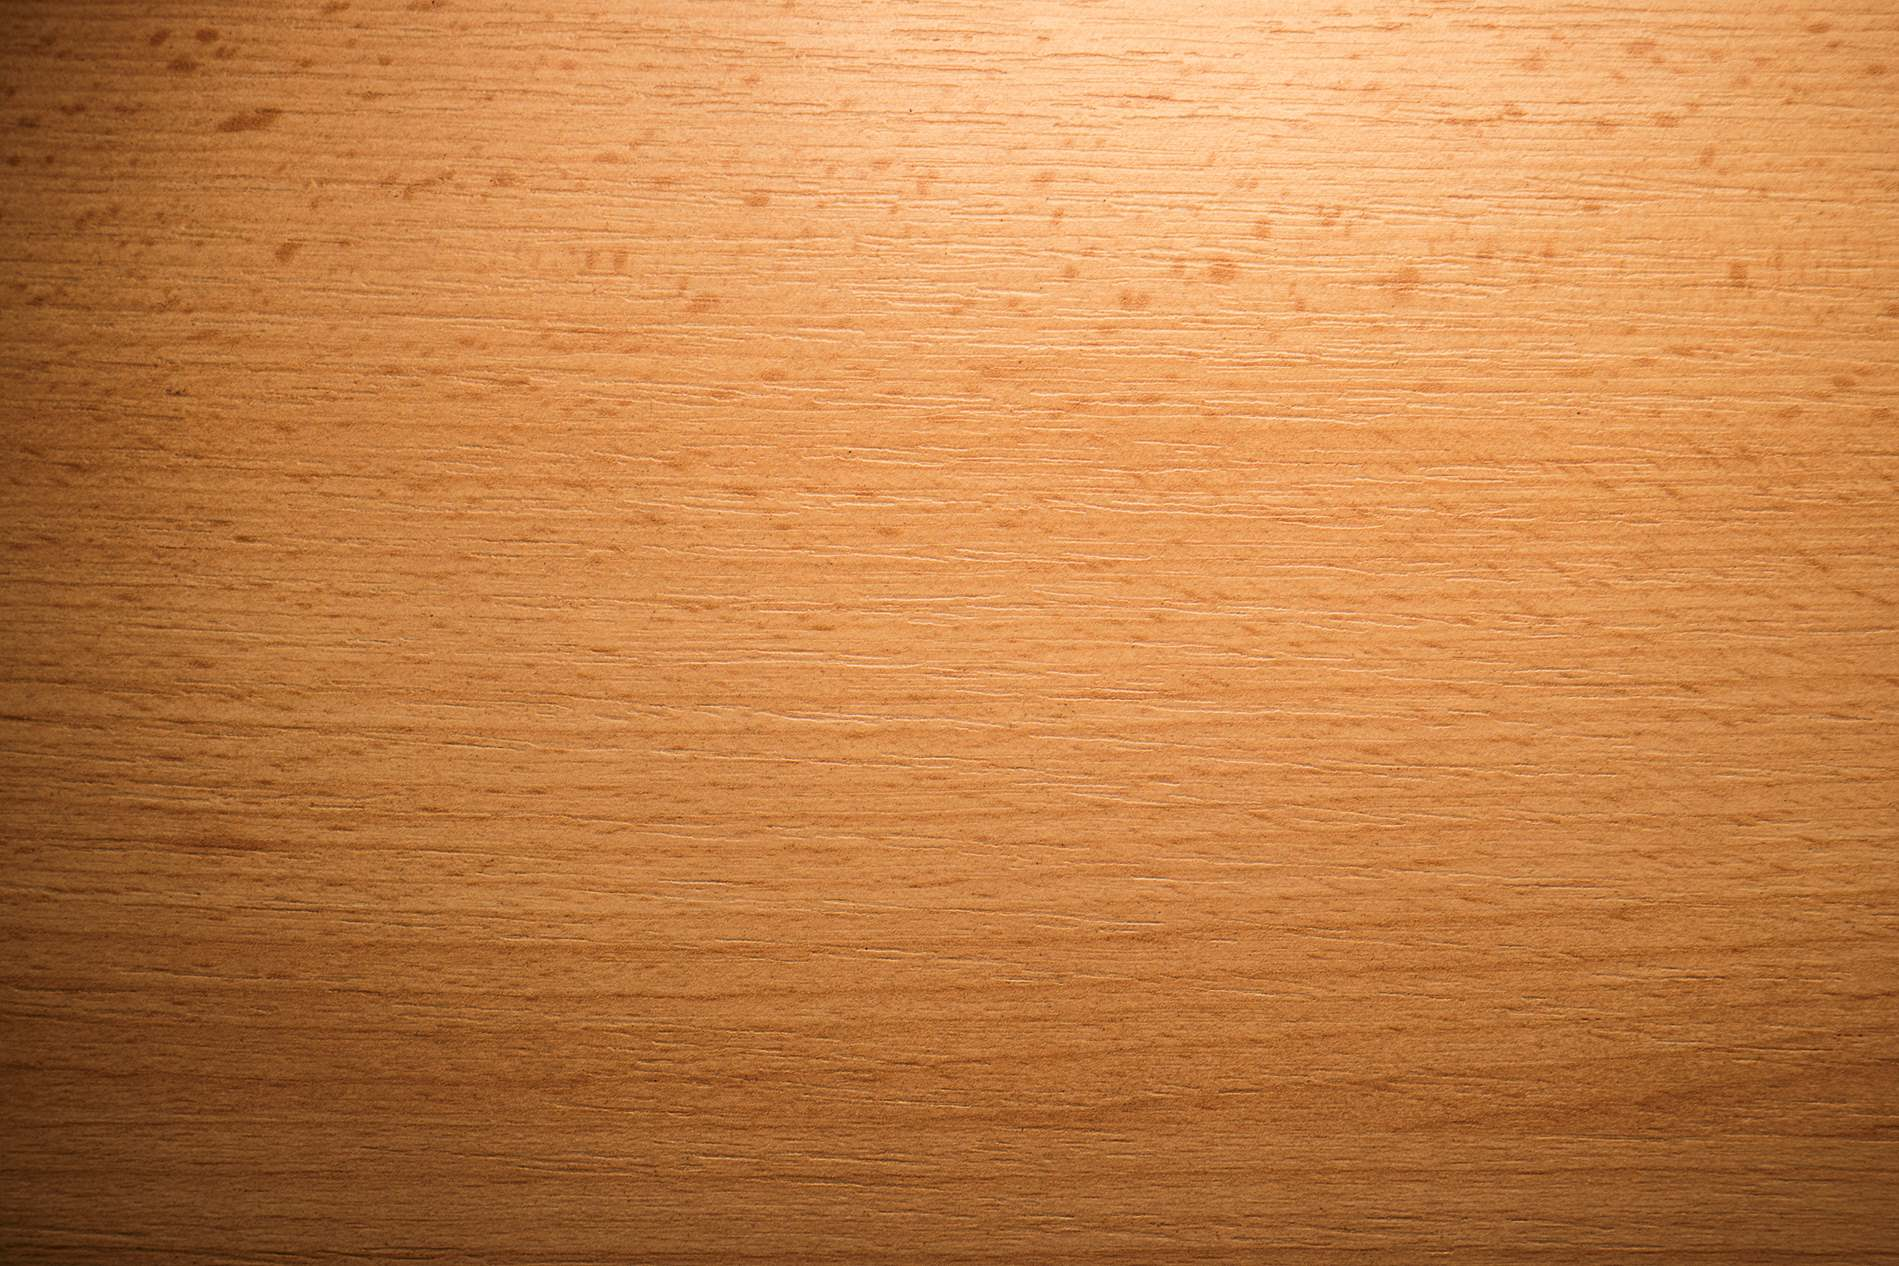 yellow wood table background photohdx